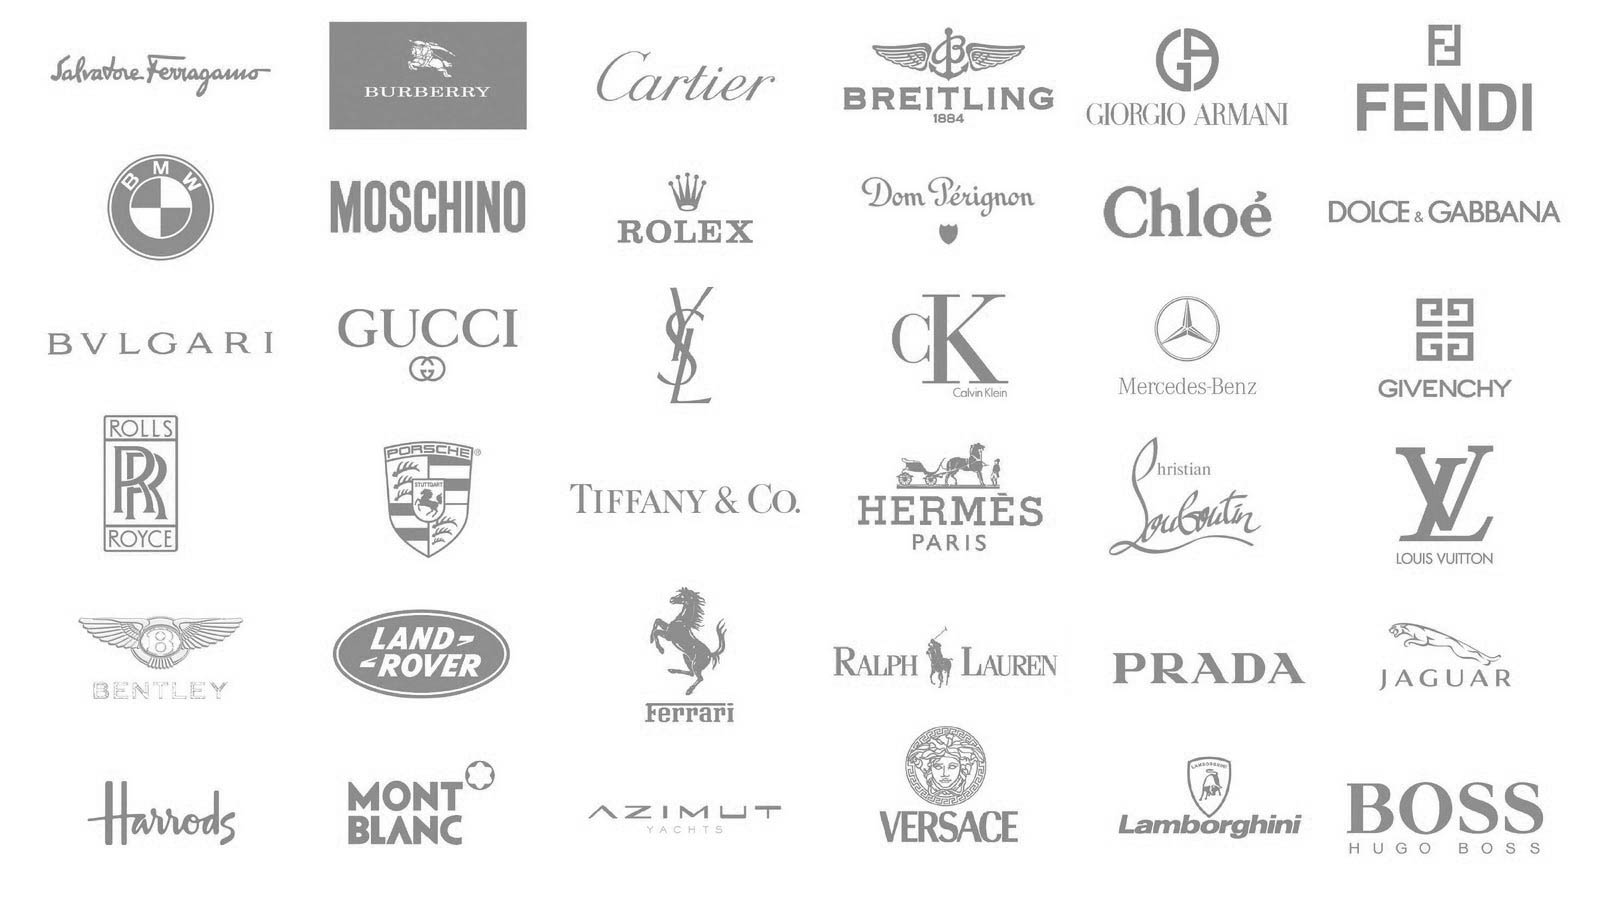 top 9 luxury brands runway  u00ae magazine official Famous Clothing Logos Clothing Company Logos and Apparel